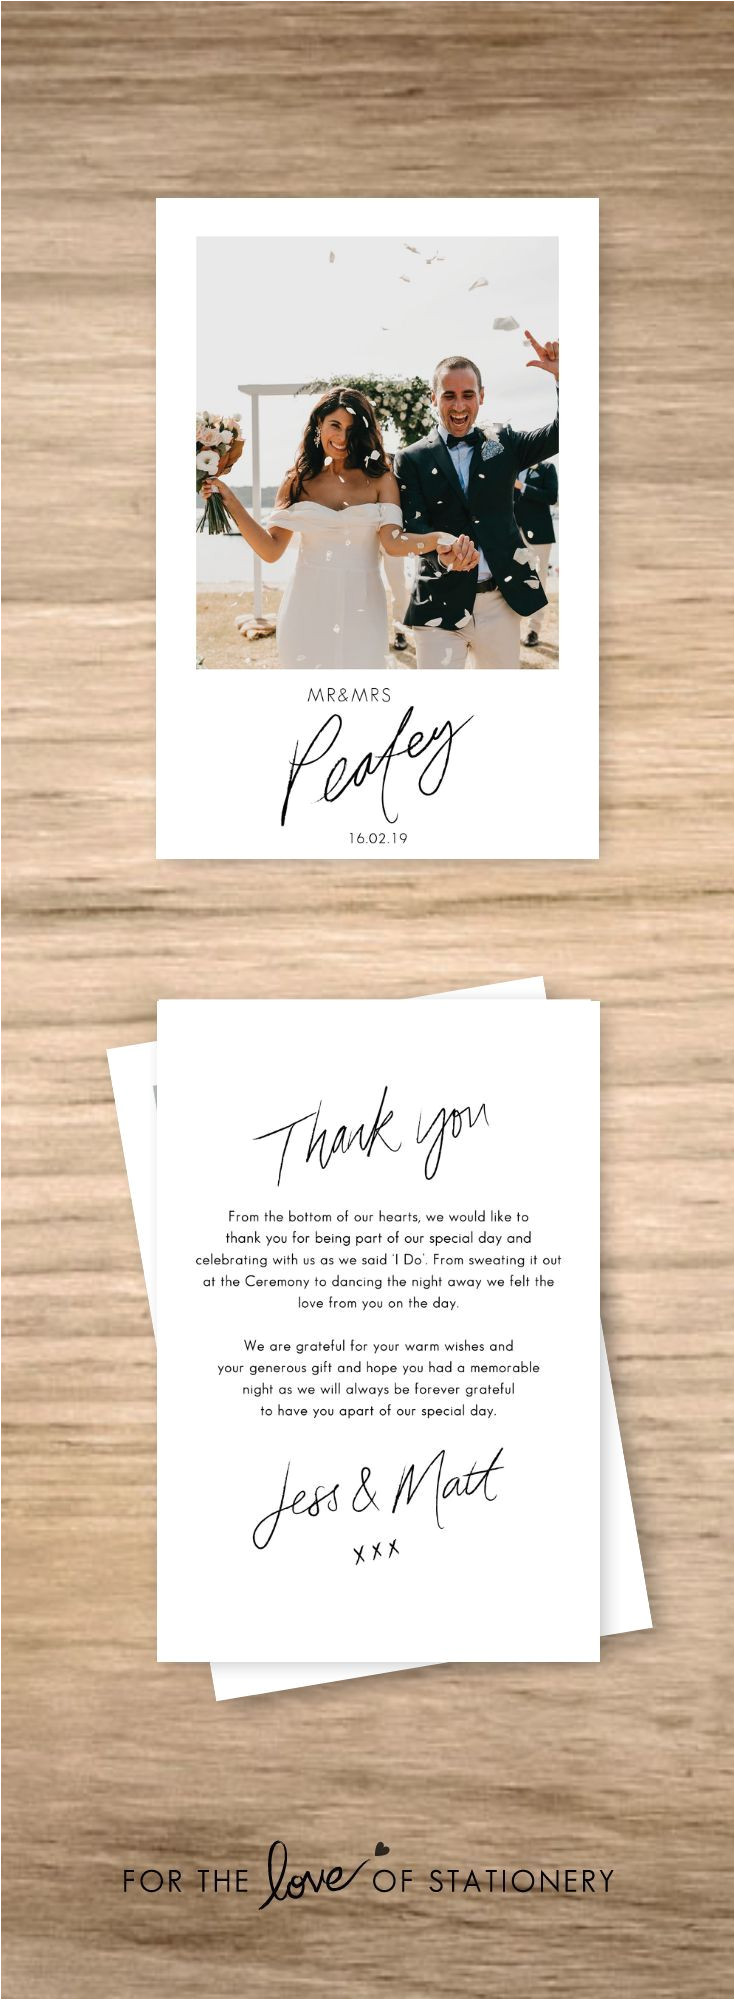 What to Write In A Wedding Thank You Card Personalised Wedding Thank You Cards with Photos with